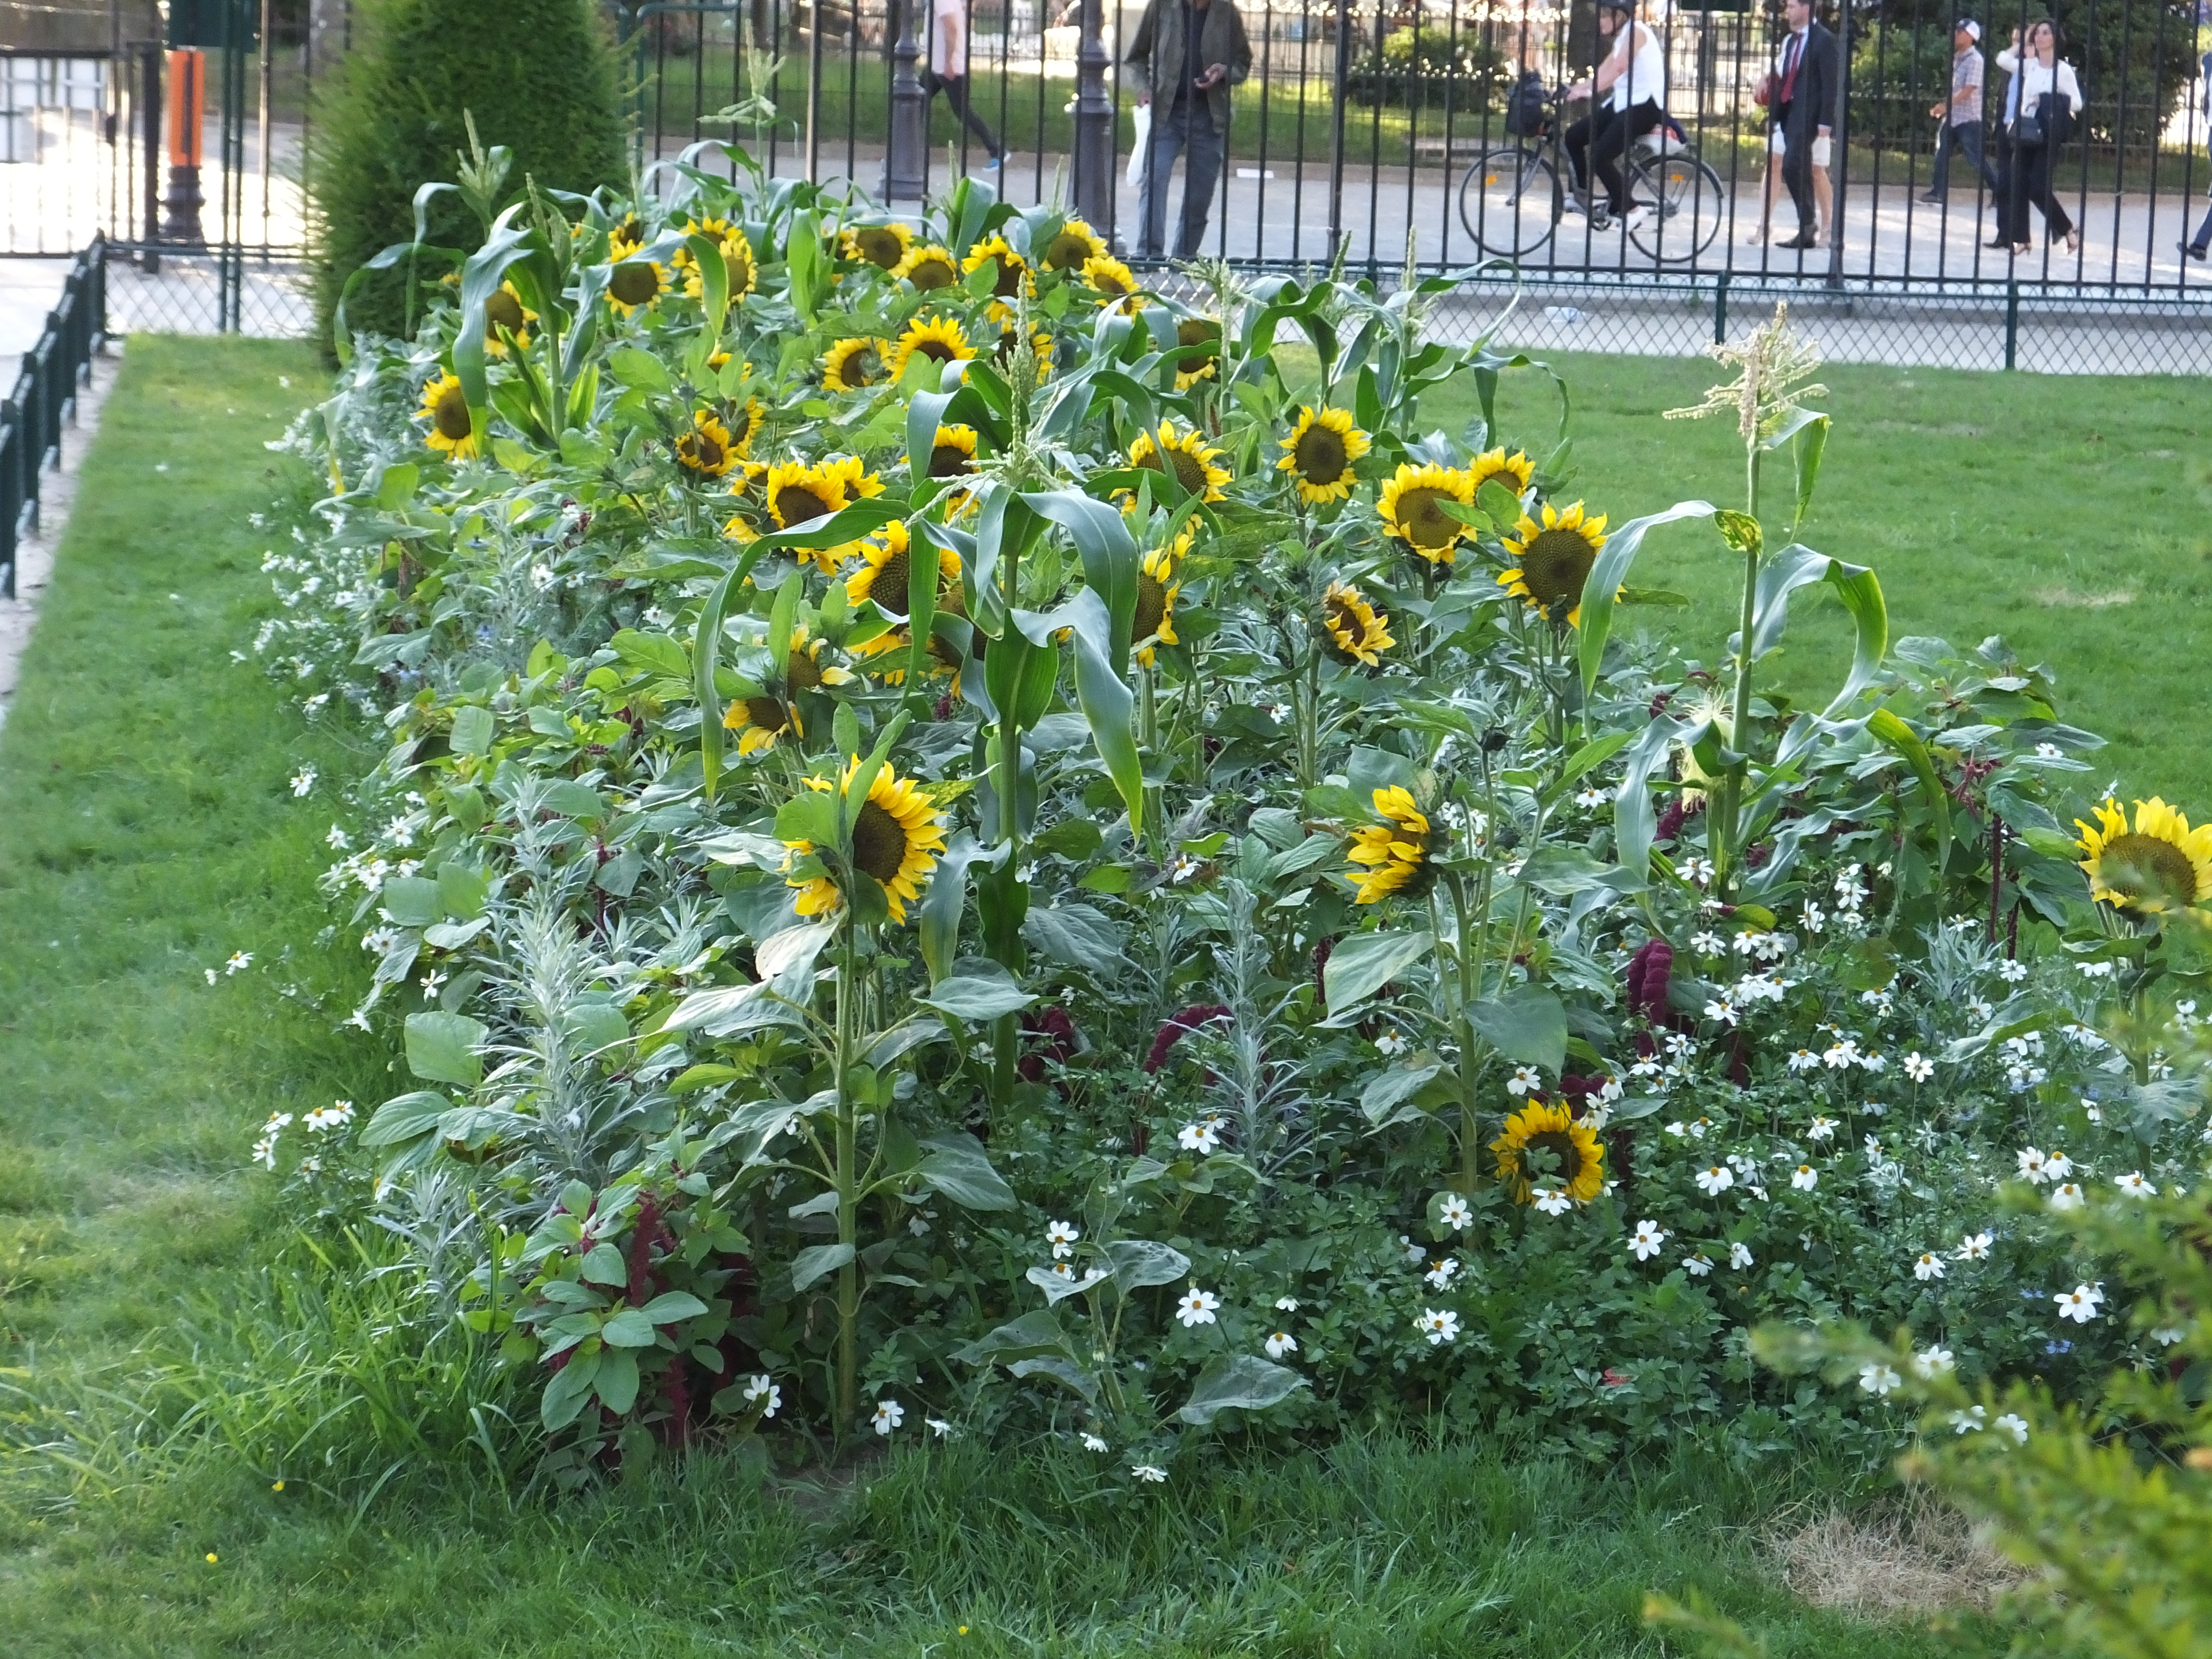 The sunflowers in the park next to Notre Dame